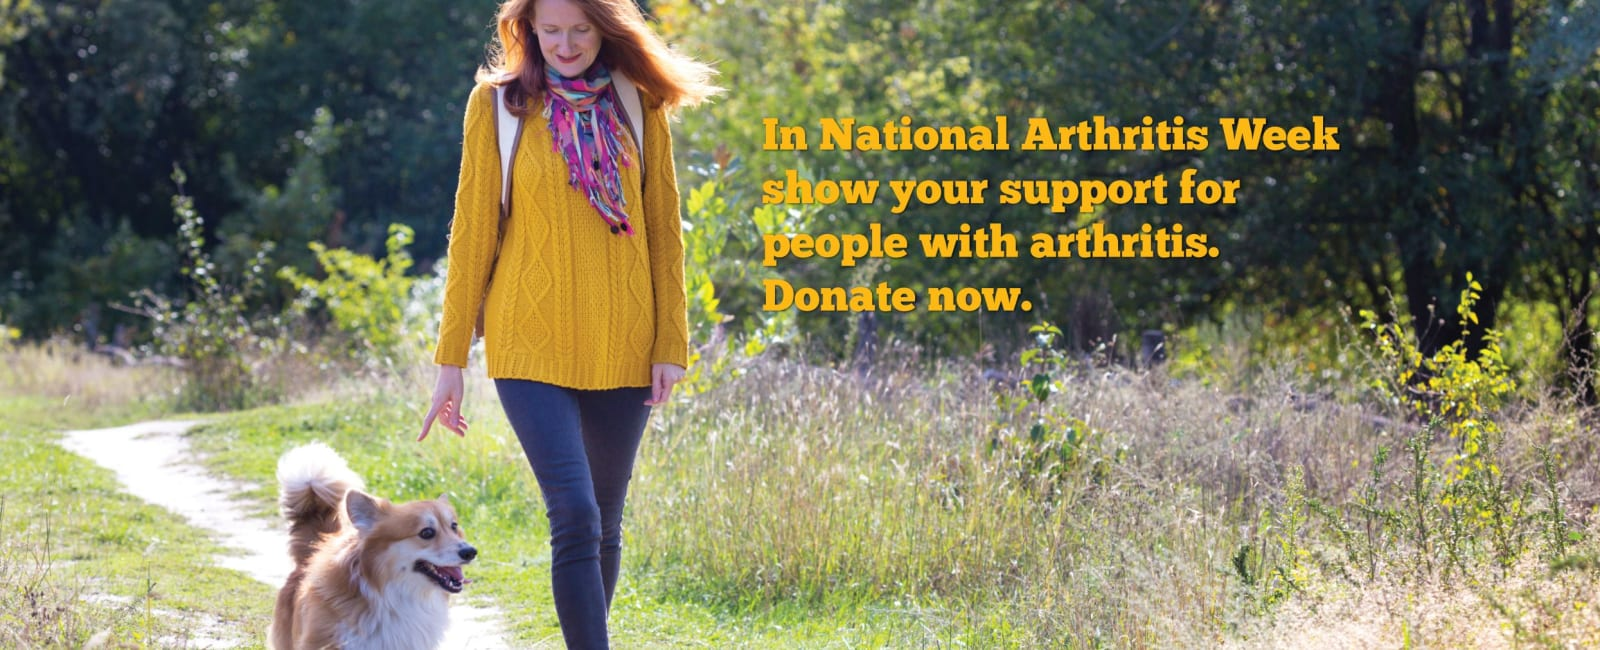 National Arthritis Week appeal